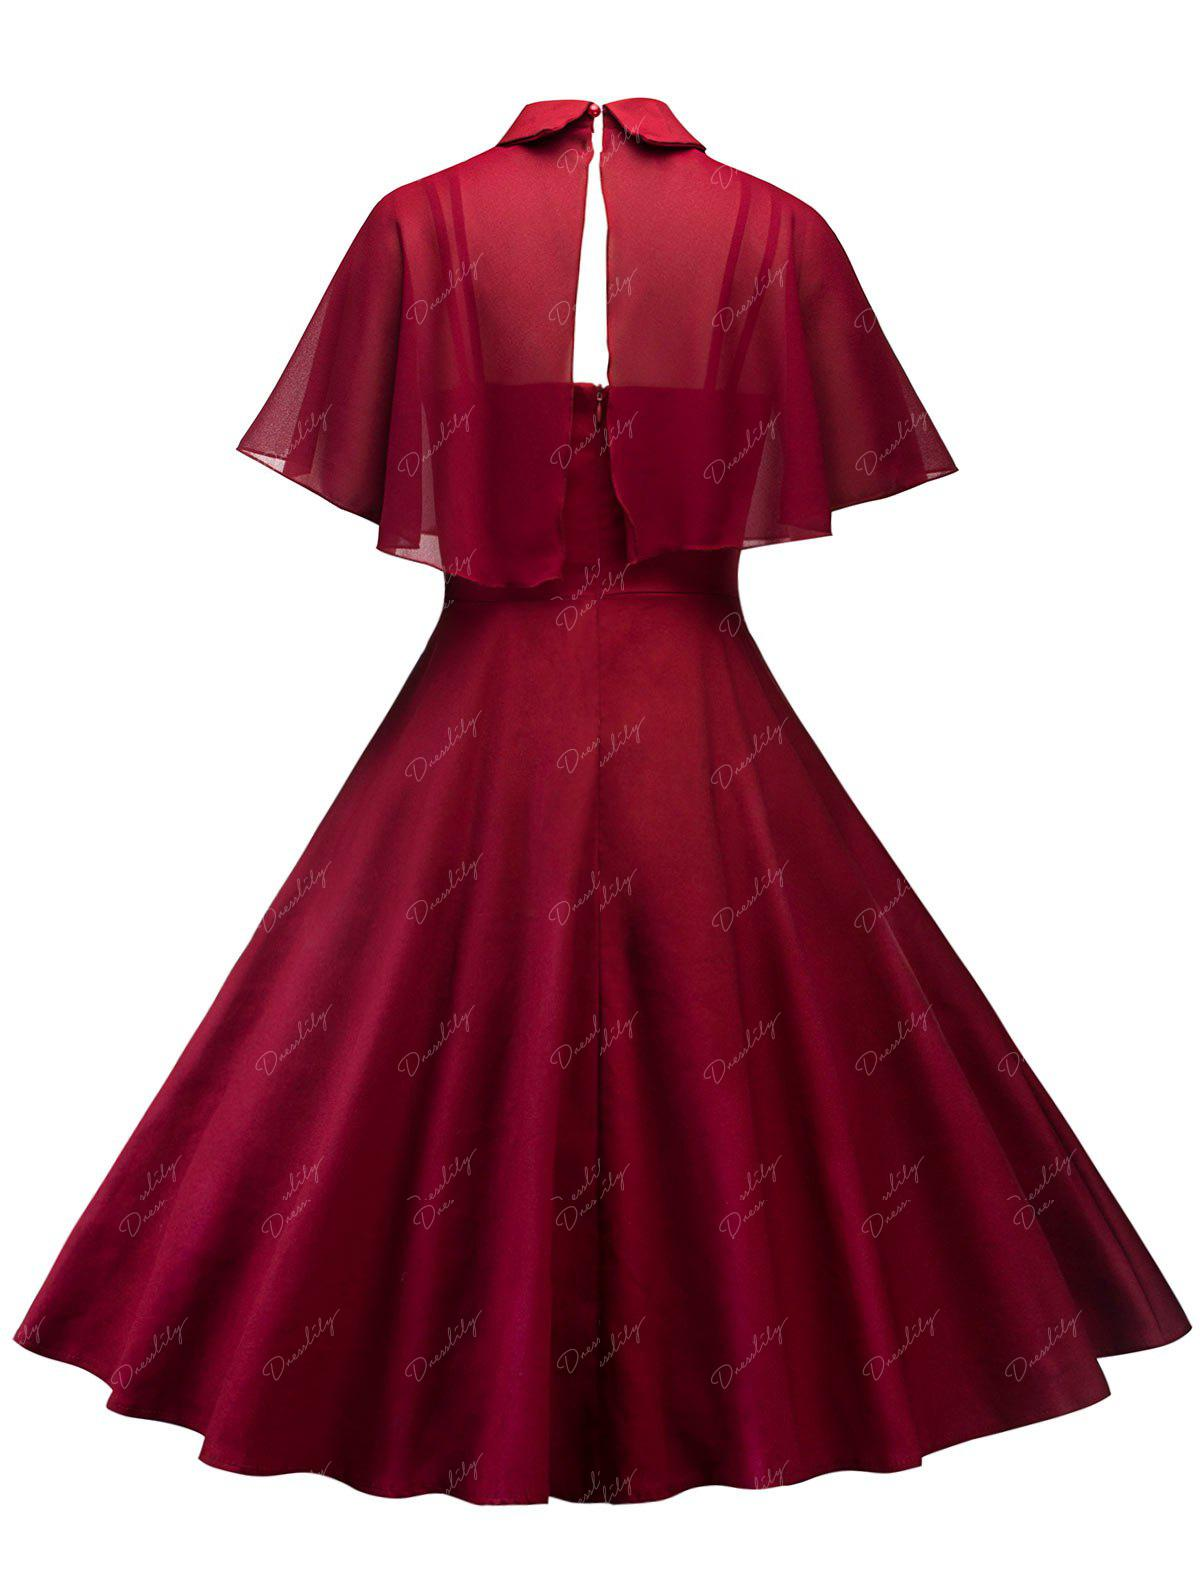 Vintage Pin Up Dress With Mesh Cape - WINE RED M